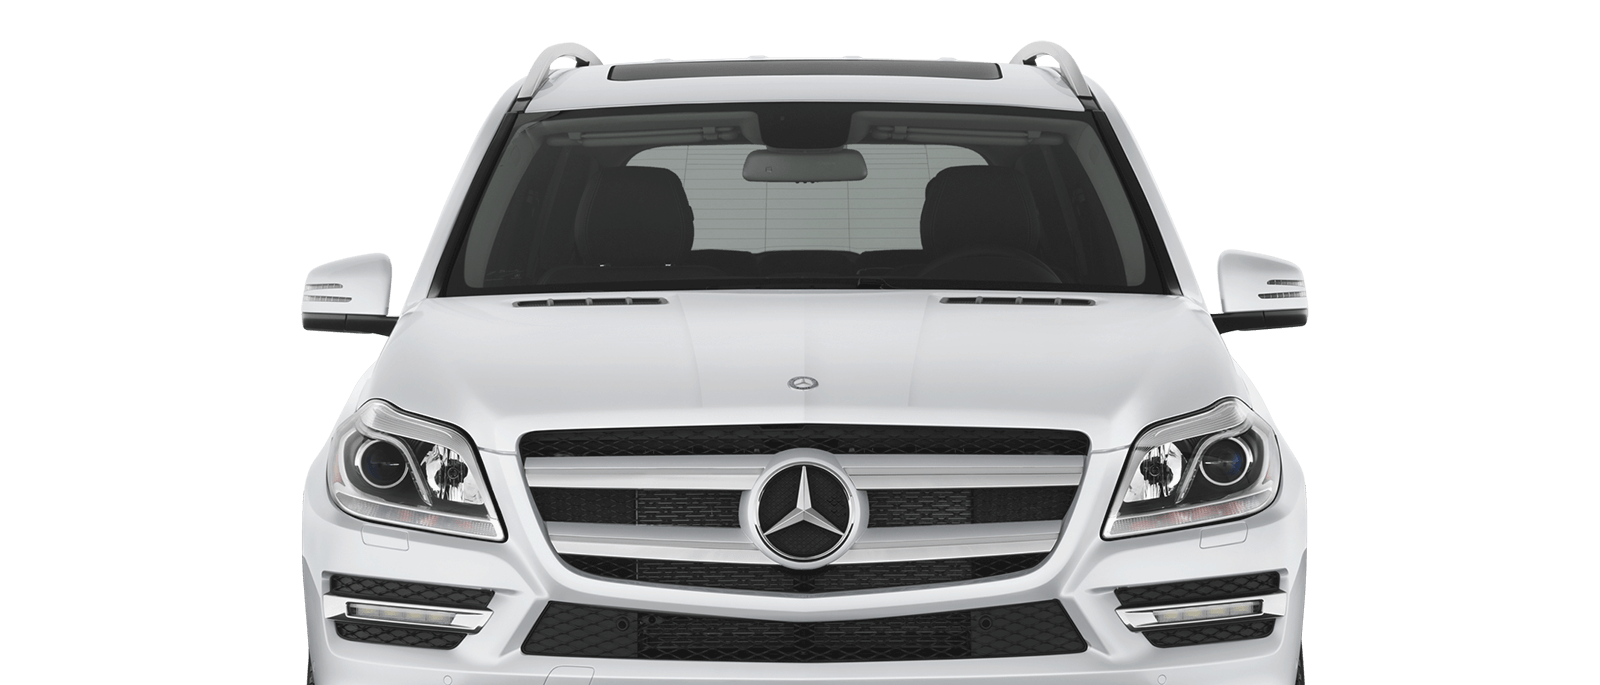 Mercedes benz gl450 car rental exotic car collection by for Enterprise mercedes benz